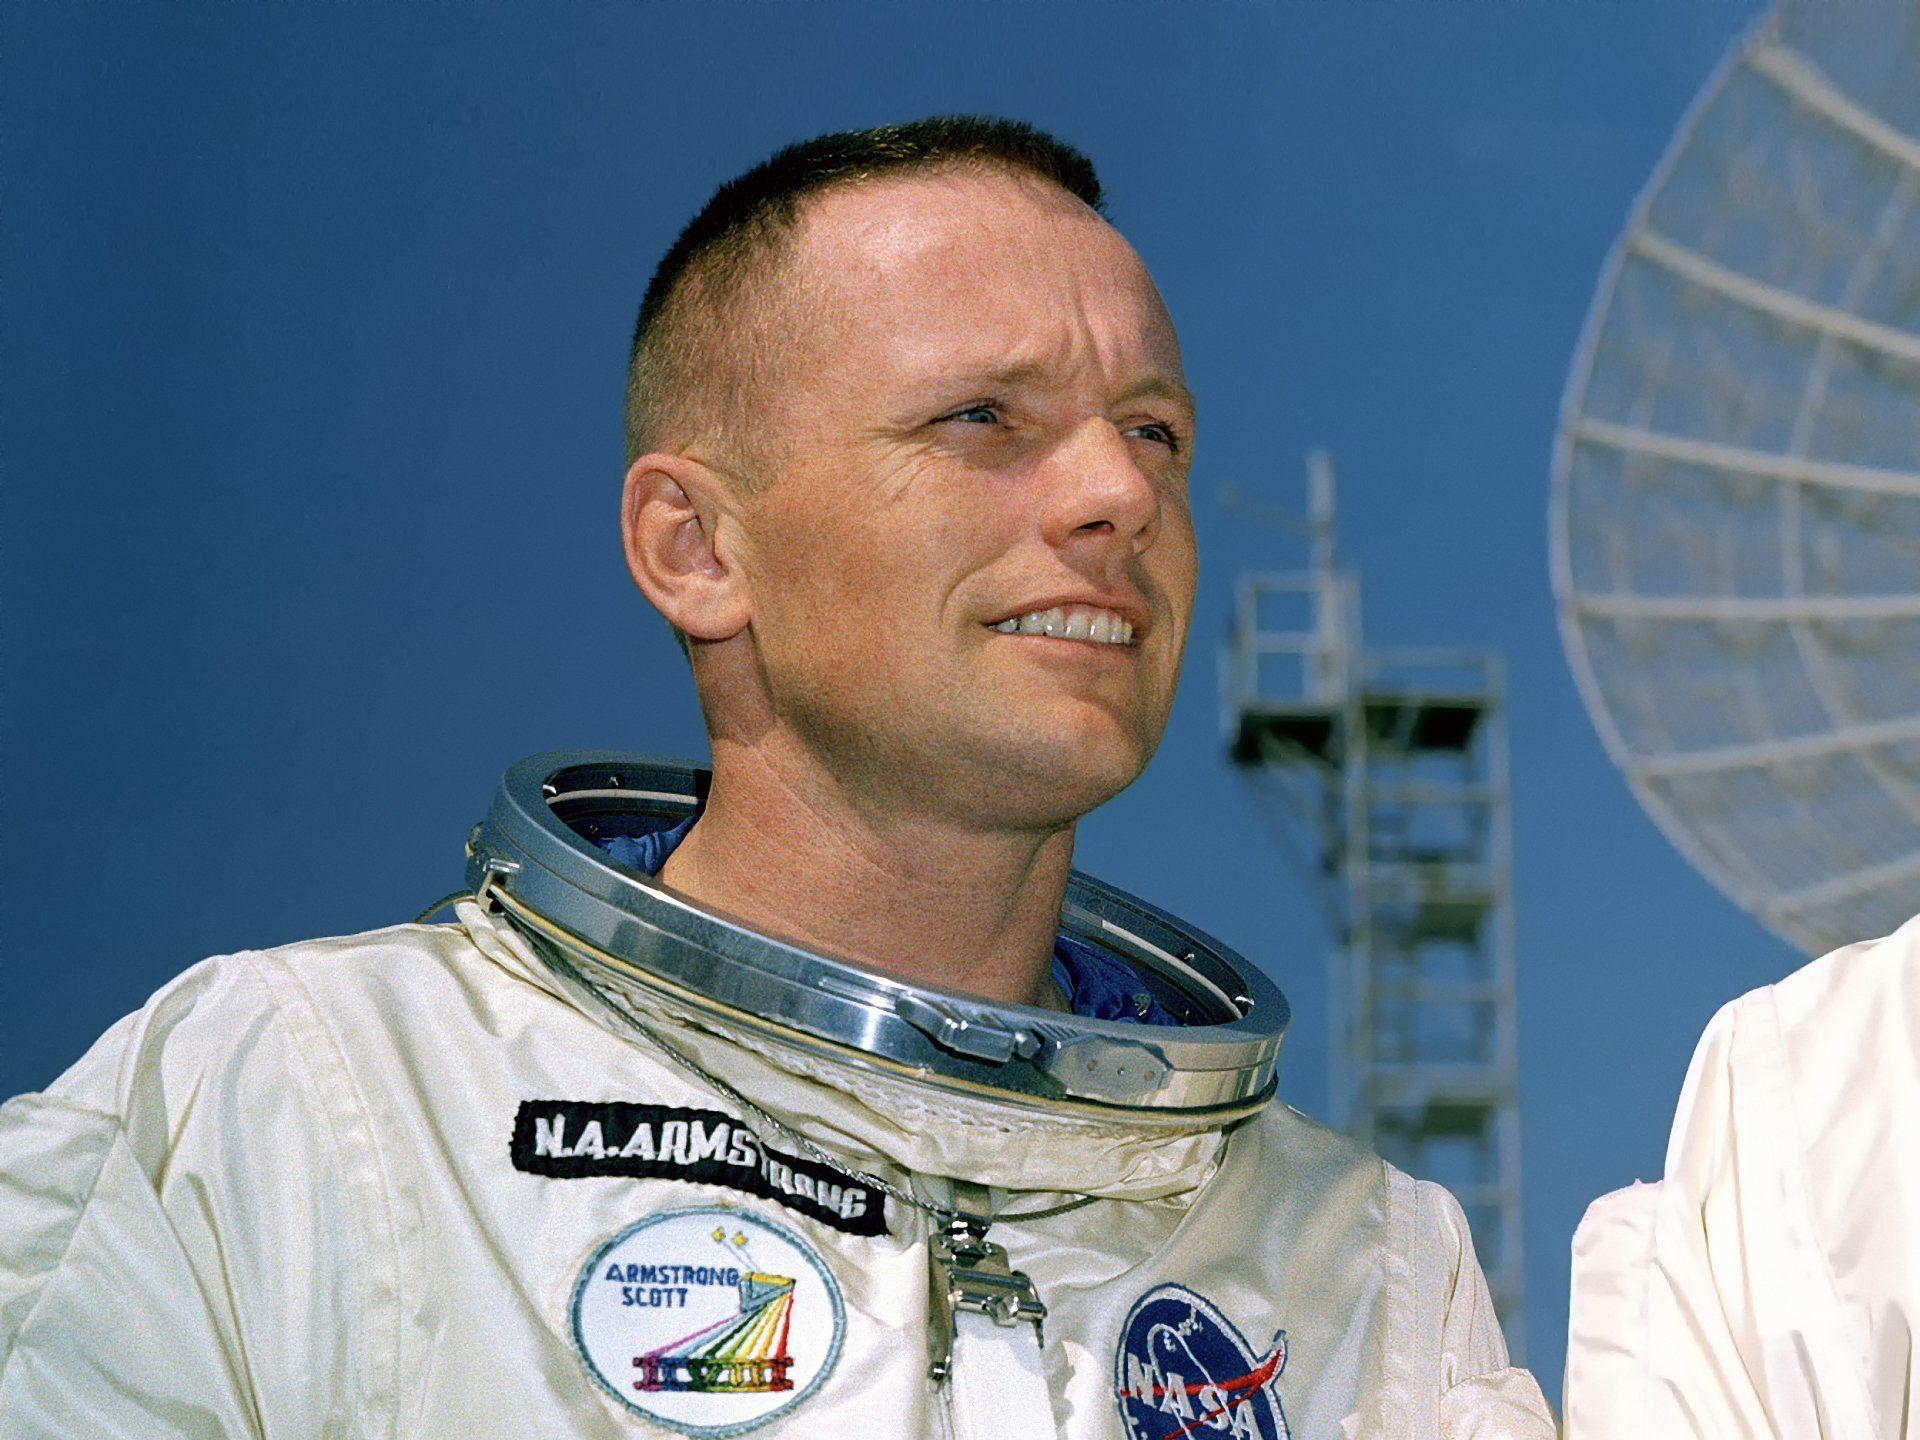 neil armstrong astronaut man legend space moon HD wallpapers